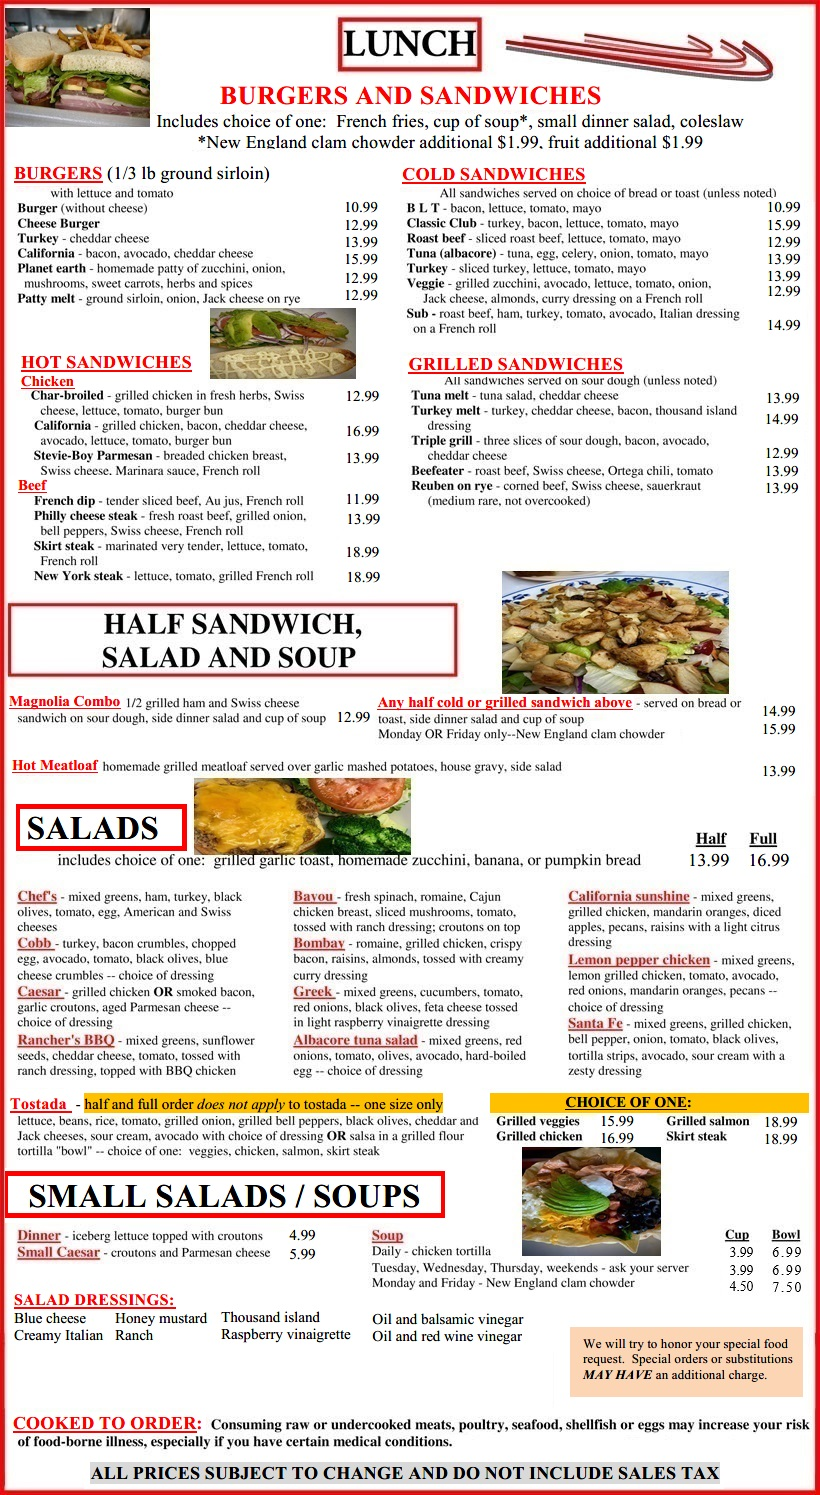 The Magnolia Grille's lunch menu